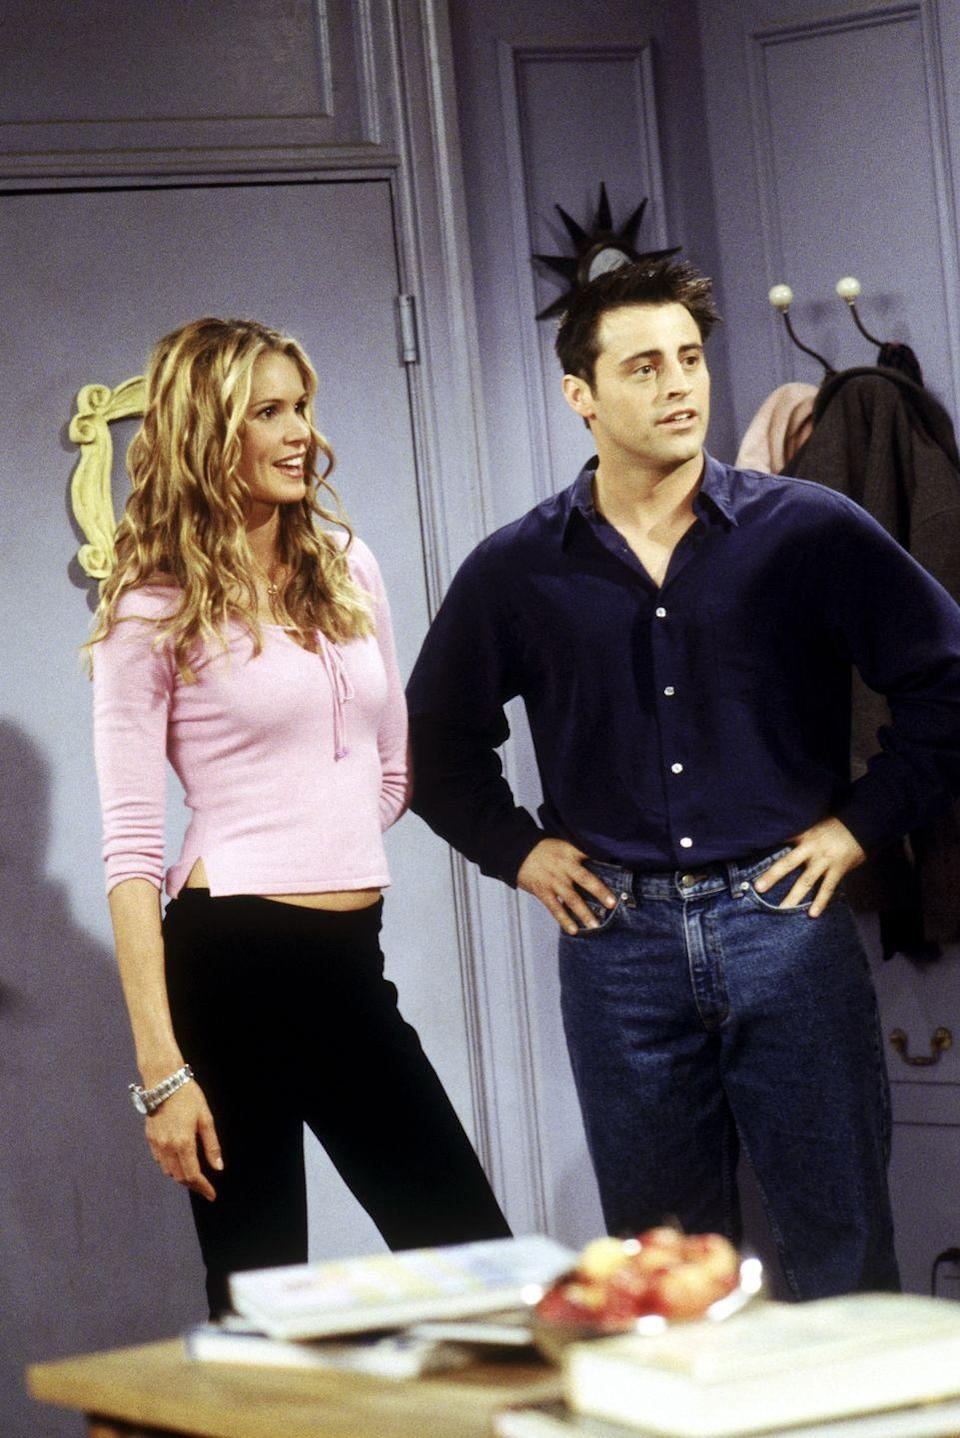 <p>One of Joey's more serious relationships involves him falling head over heels for his dancer roommate, Janine, who was played by Australian model Elle Macpherson.</p>